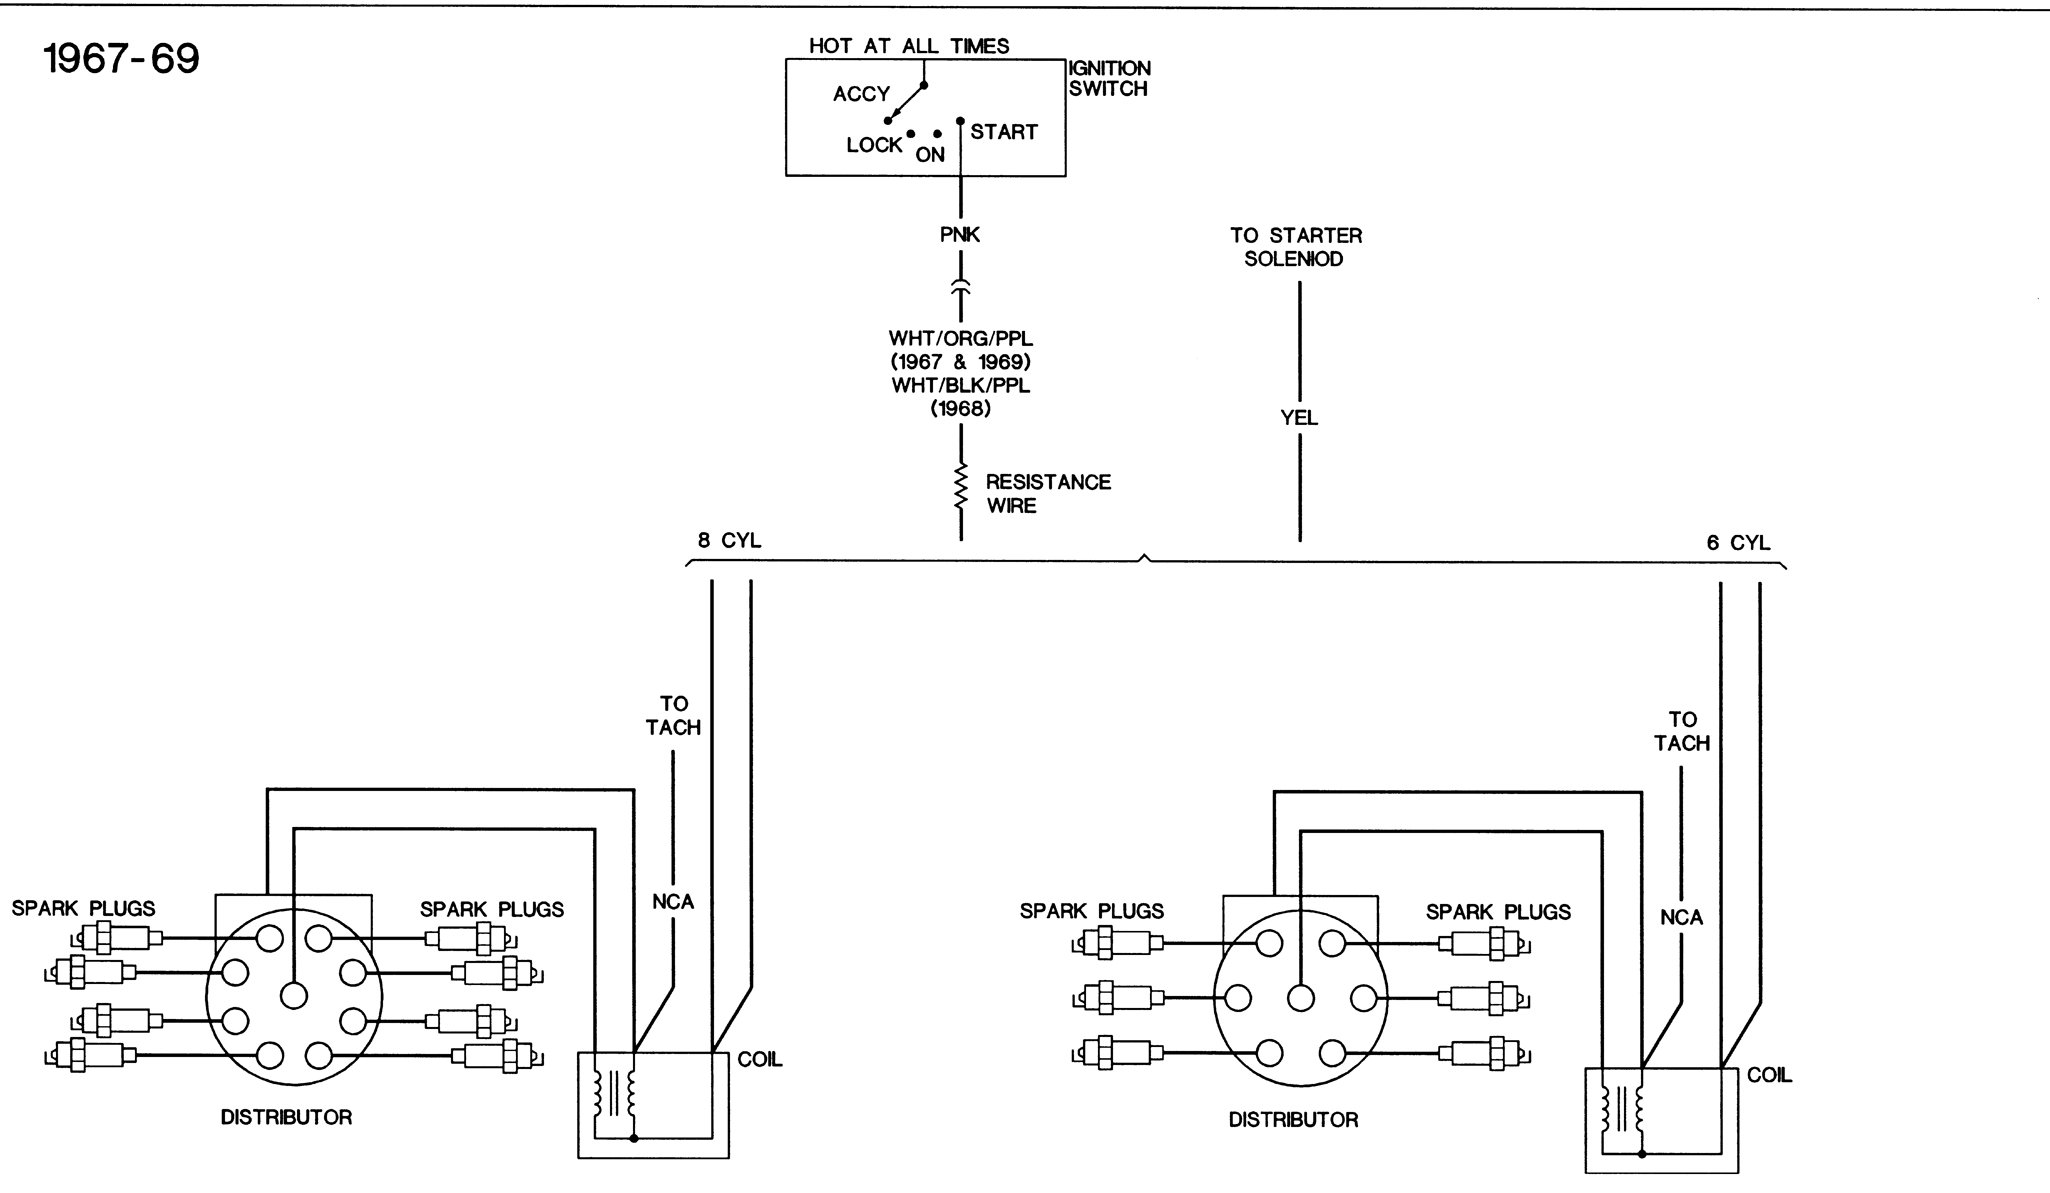 DIAGRAM] 1995 Camaro Ignition Wiring Diagram FULL Version HD Quality Wiring  Diagram - DIAGRAMSFORLIVING.CREAPITCHOUNE.FRdiagramsforliving.creapitchoune.fr